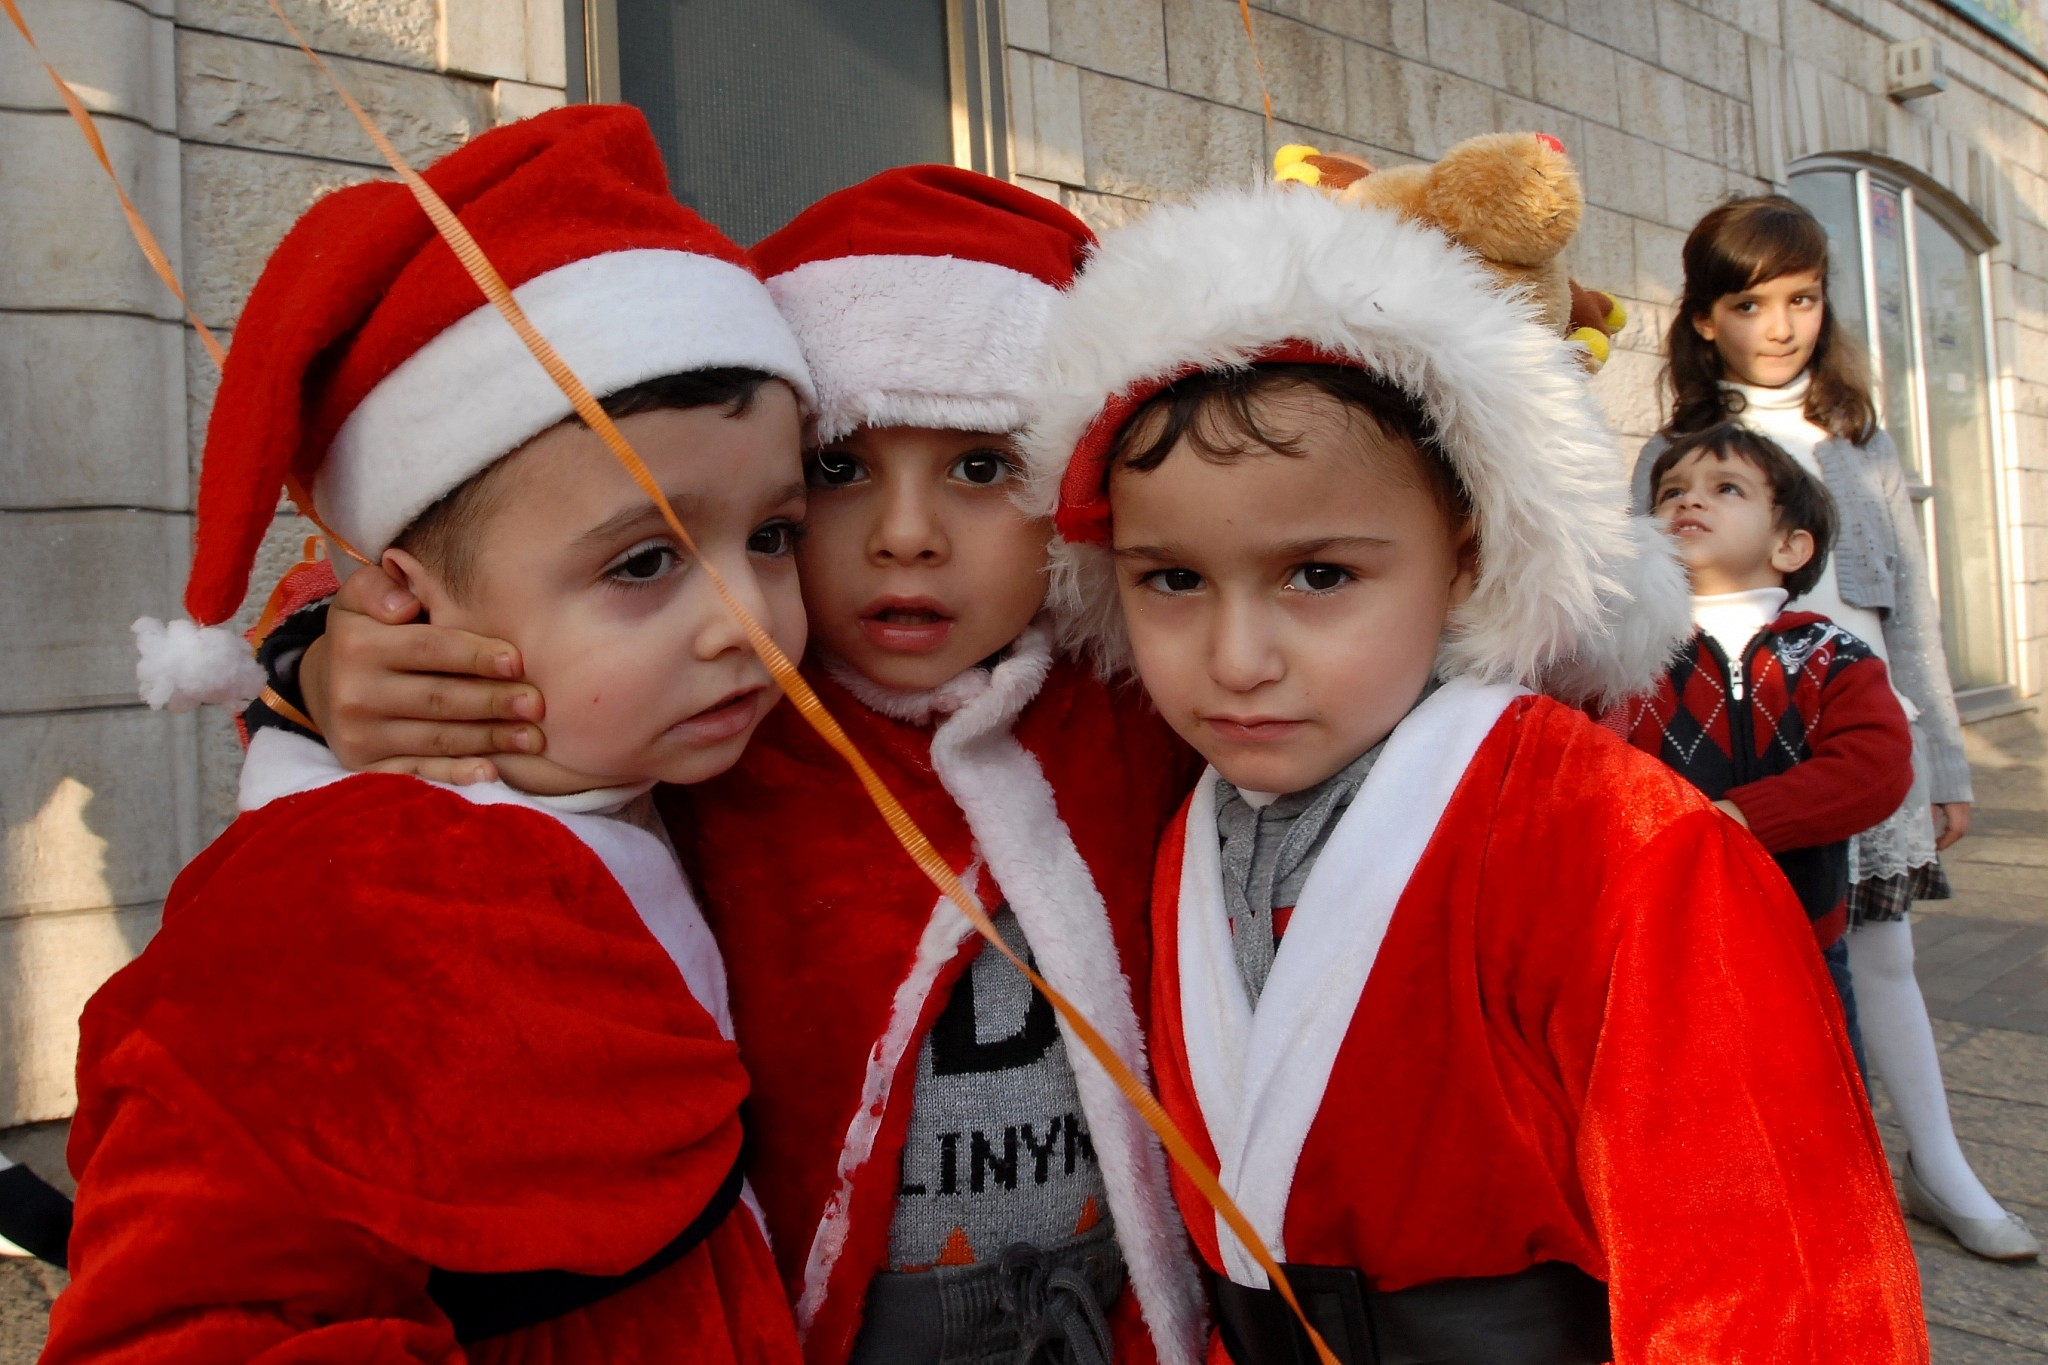 Nazareth to observe most Christmas festivities despite anger over Trump